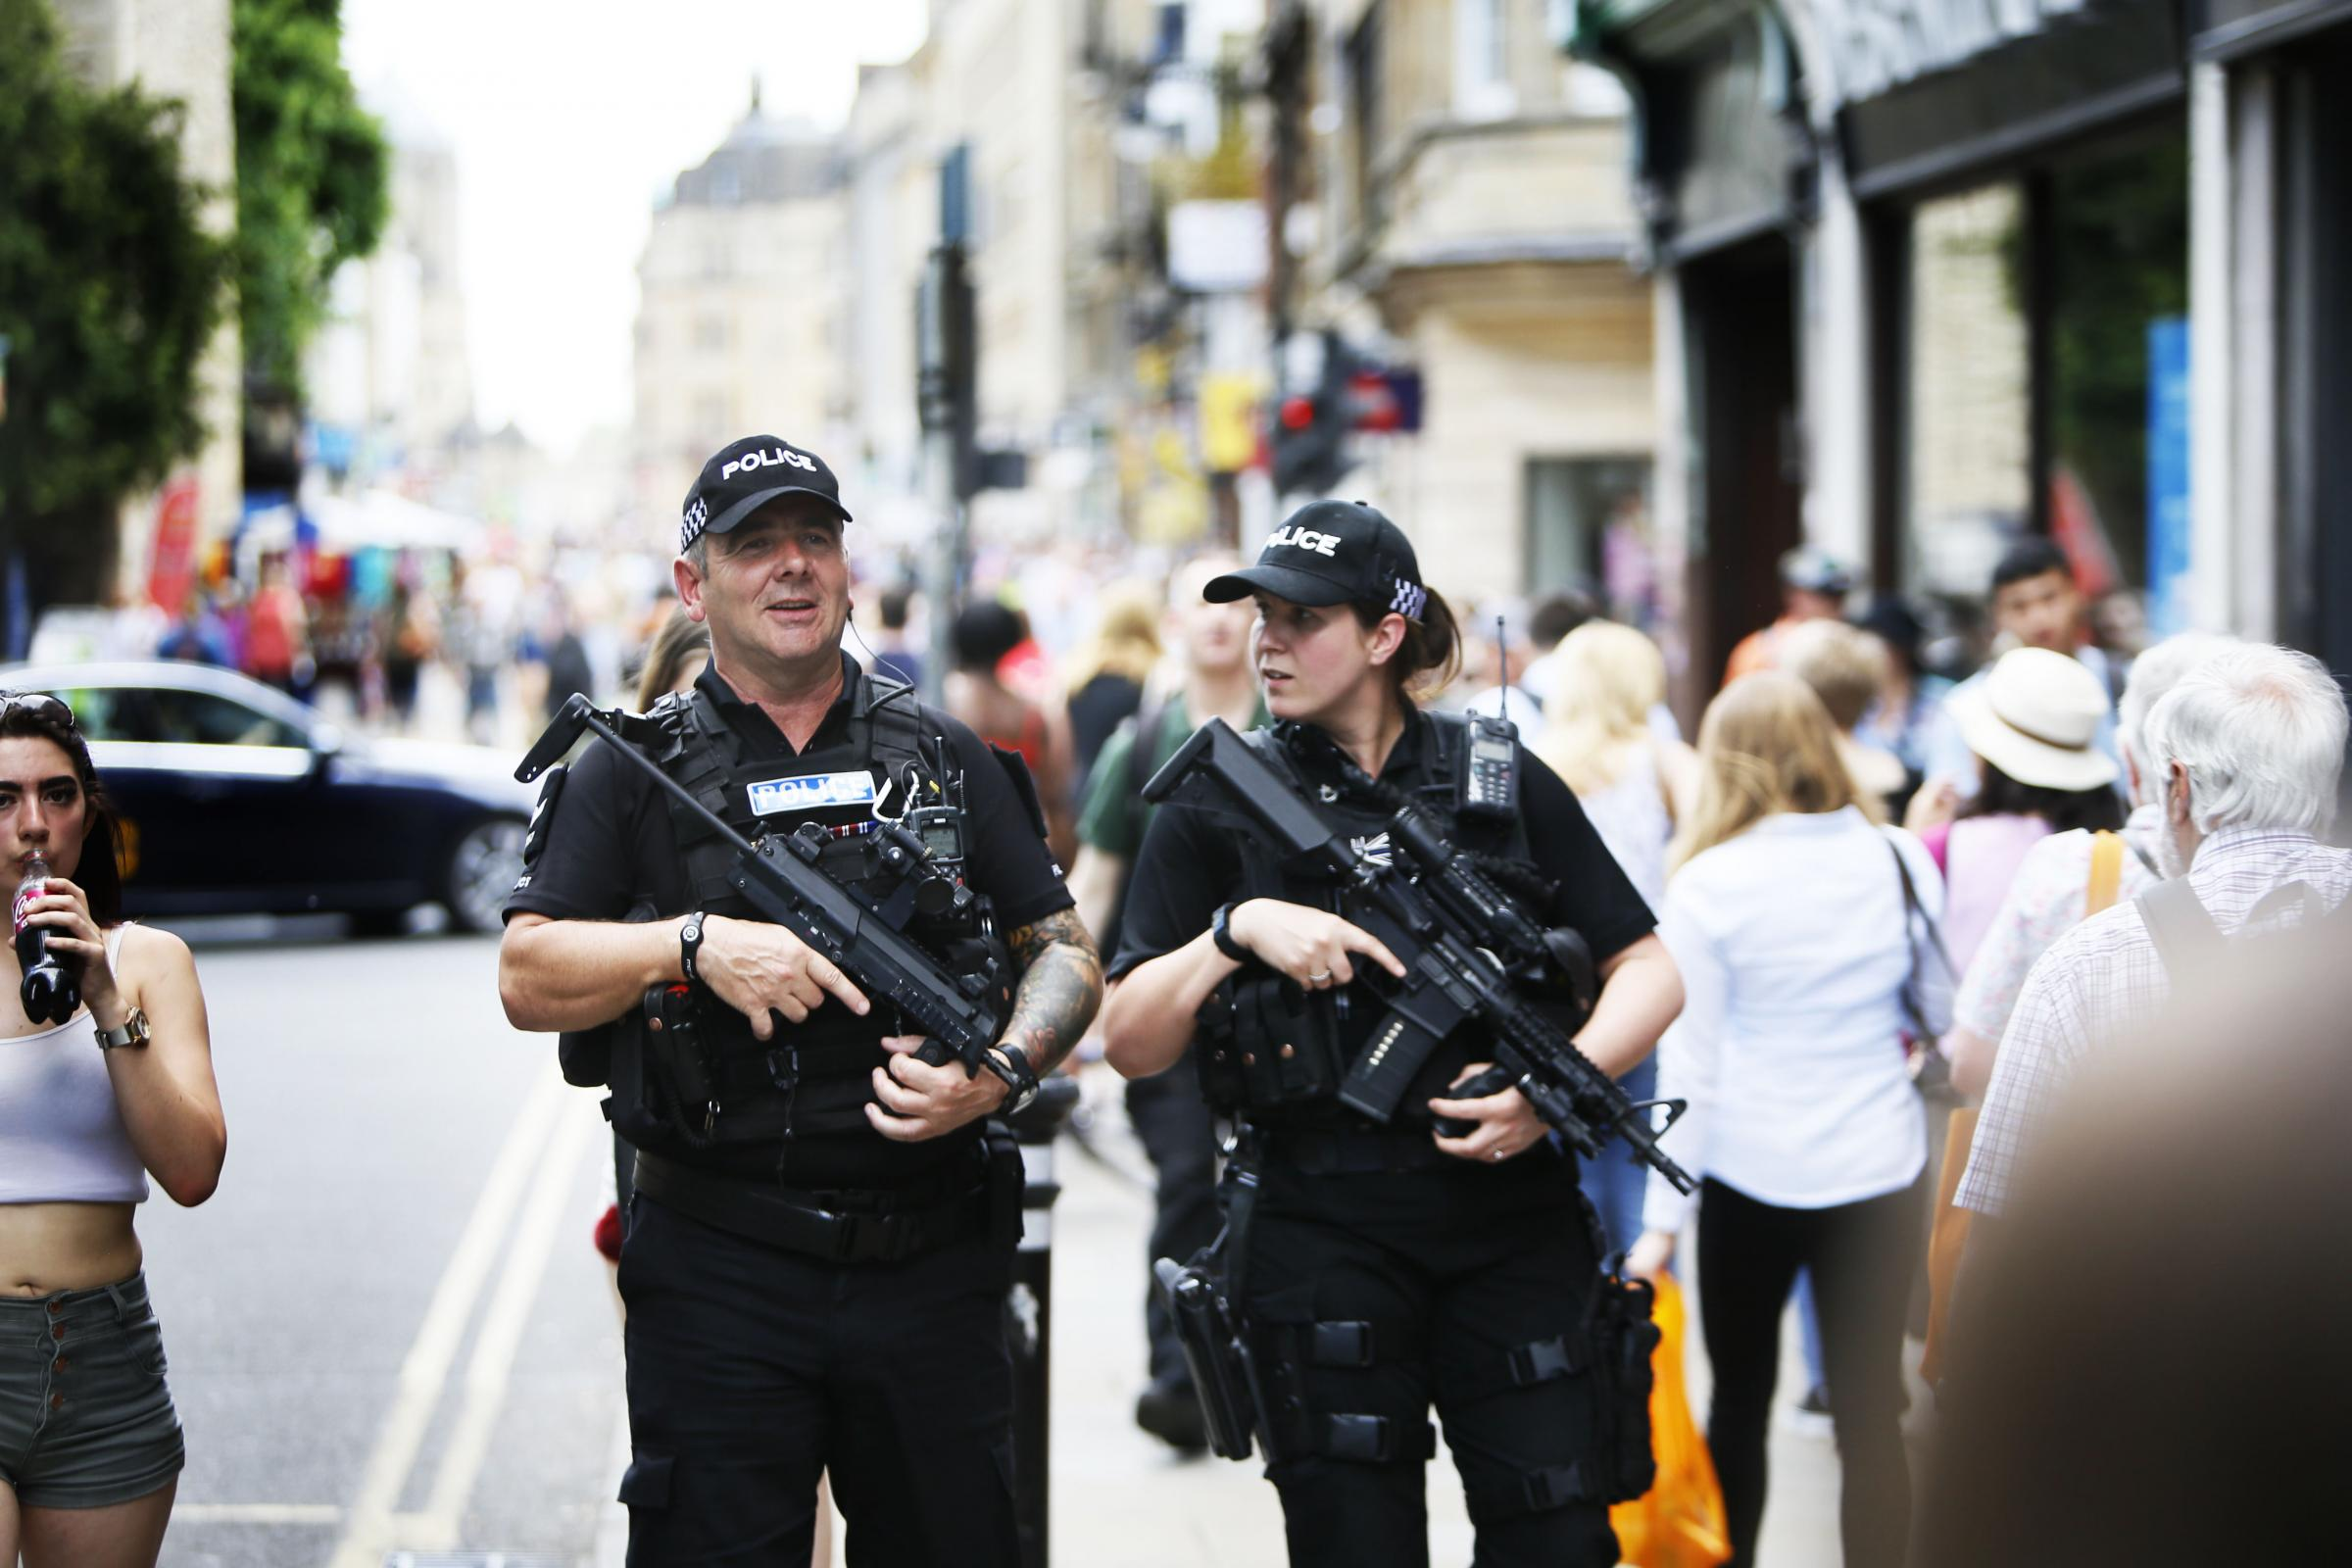 Armed police on the streets of Oxford in May 2017 following the Manchester Arena bombing. Picture: Ed Nix